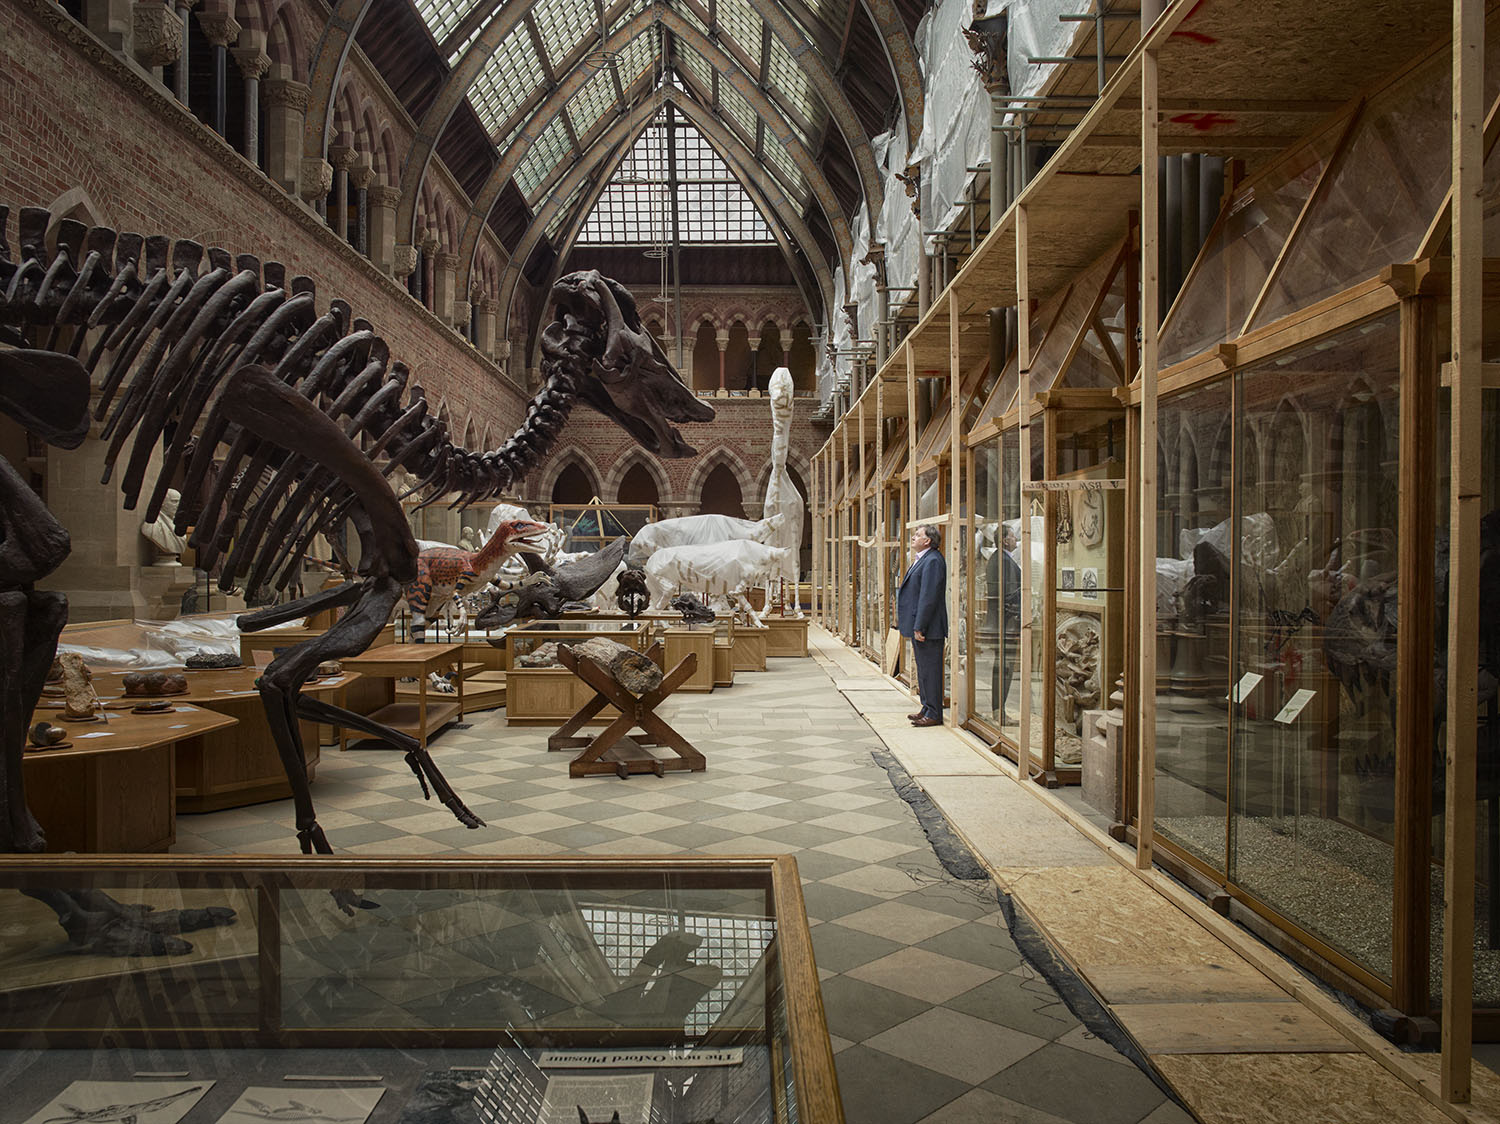 Professor Paul Smith, Director, Oxford University Museum of Natural History   Joanna Vestey  Archival pigment print 6 x 9, signed and numbered edition of 5 $150